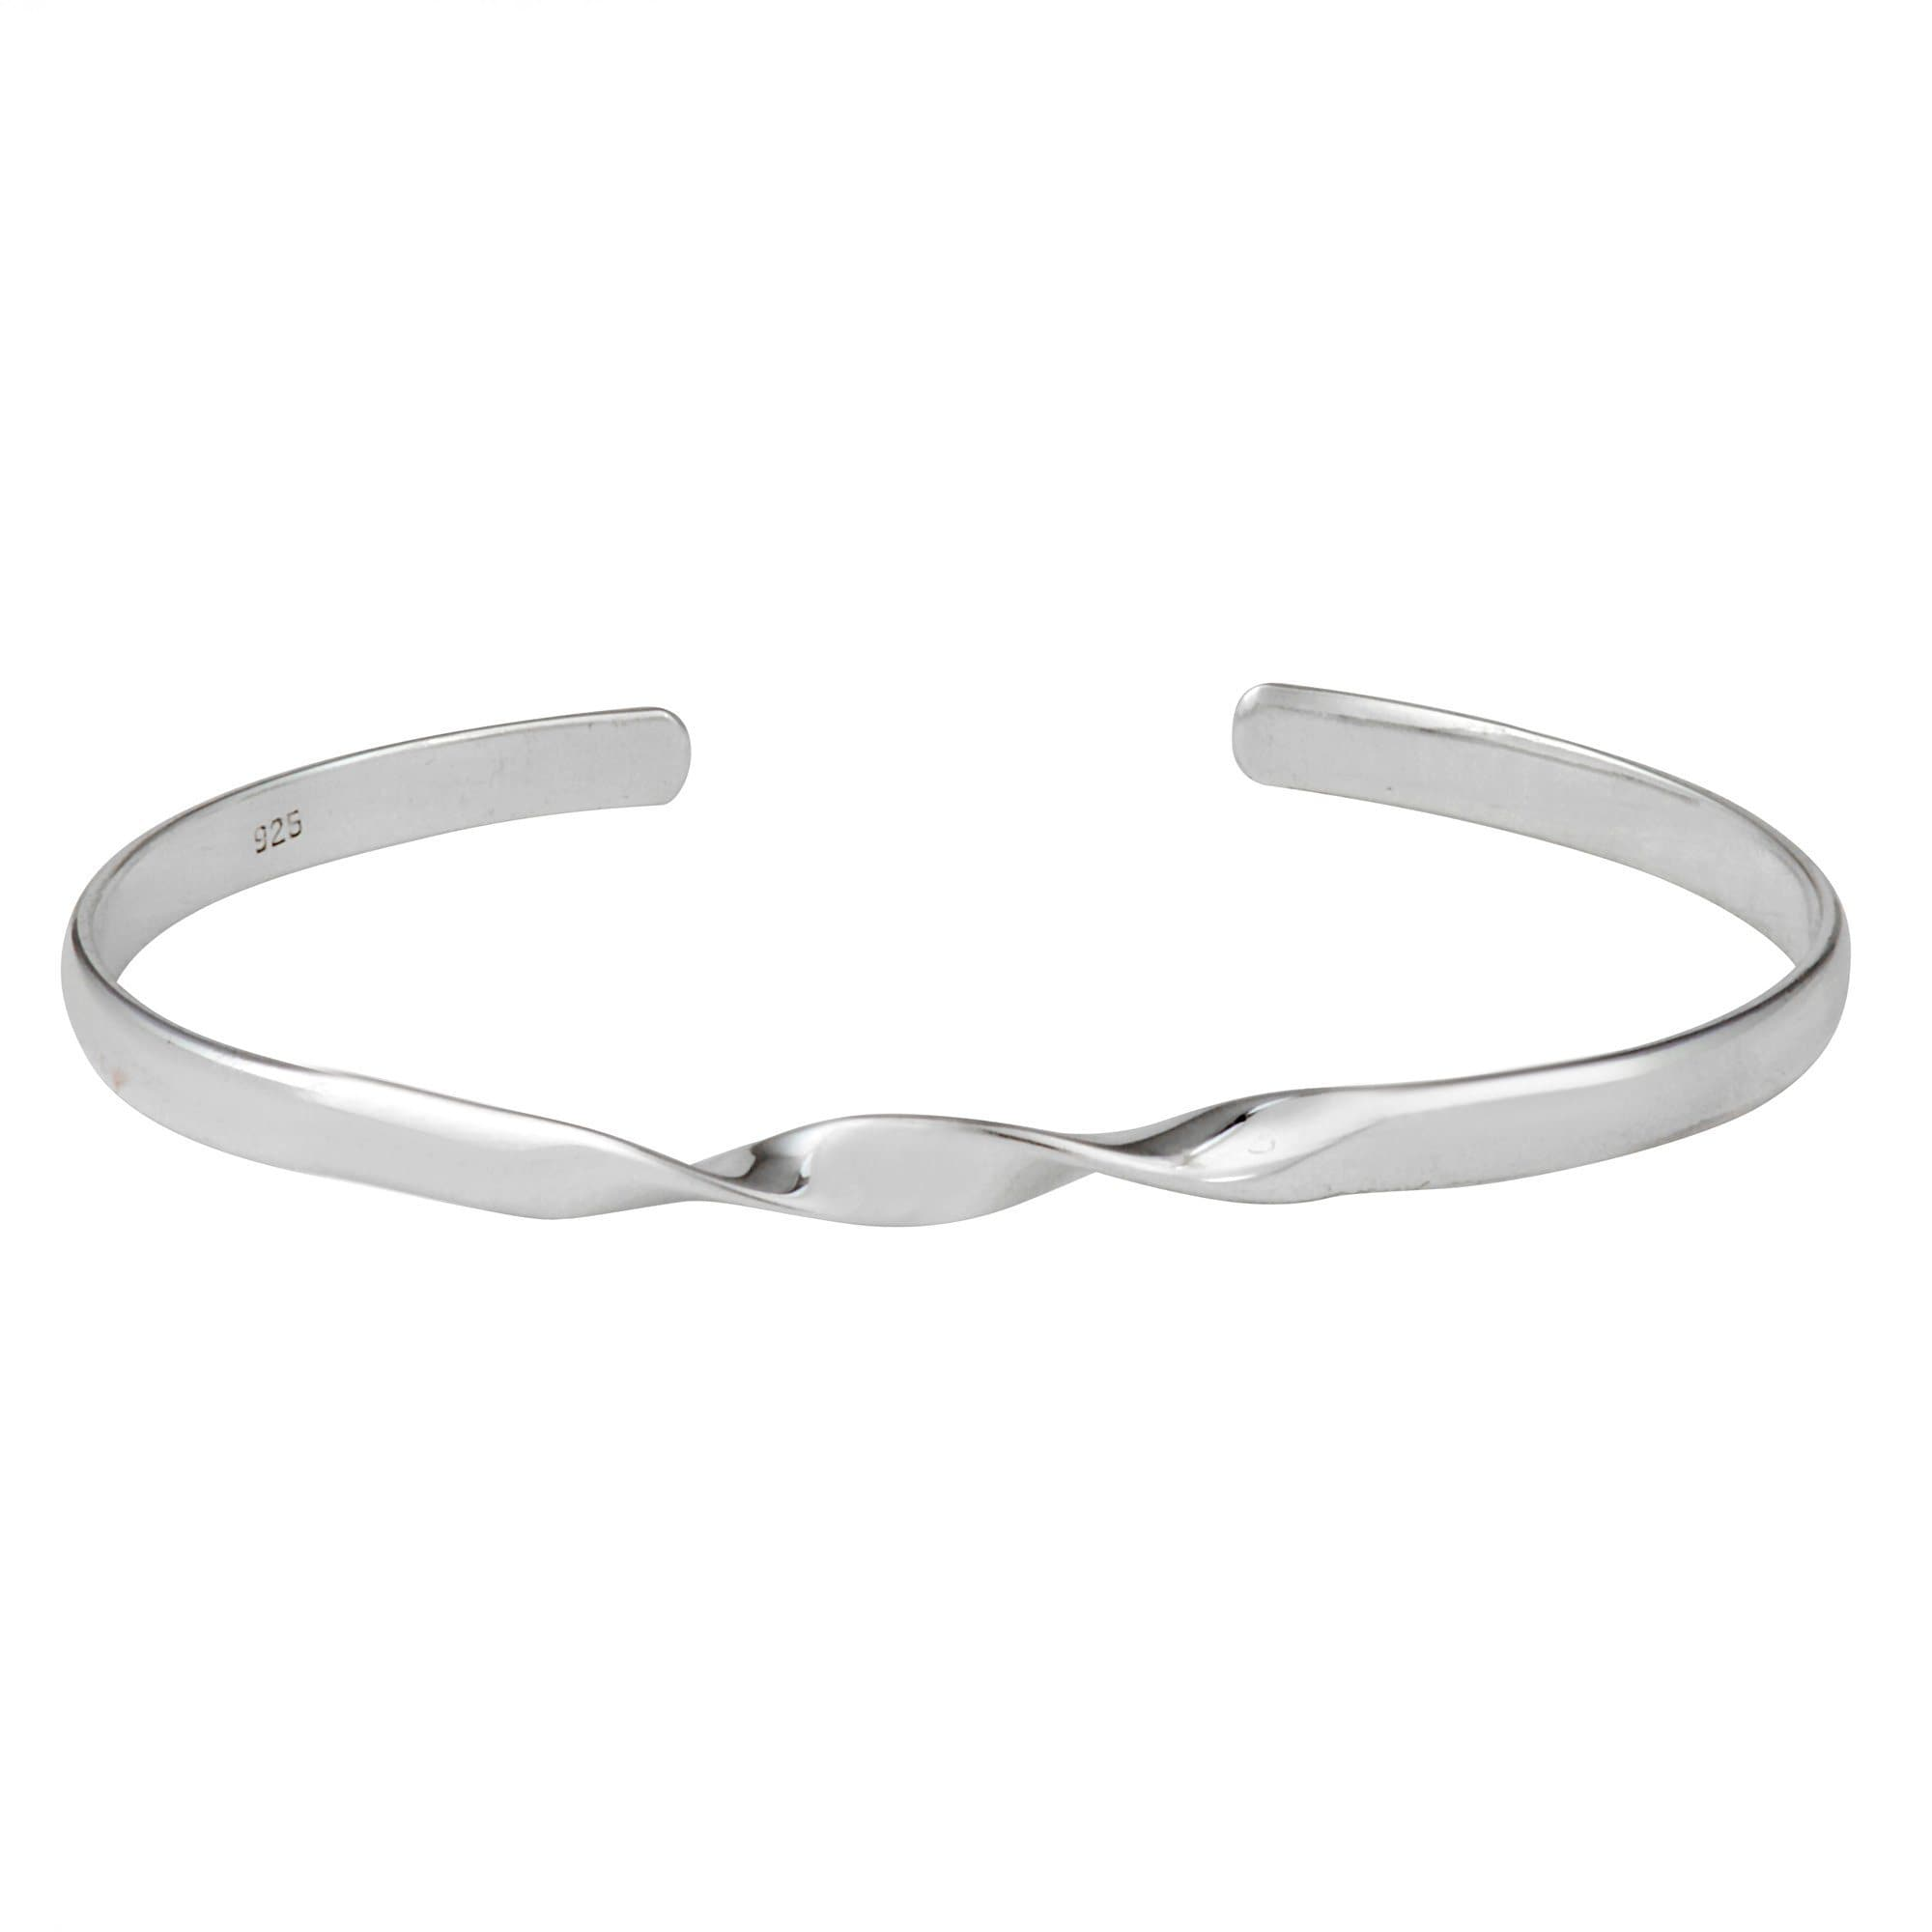 sterling designed matte hk in series vancouver jewelry studio silver inc np products bangle twist bangles t finish